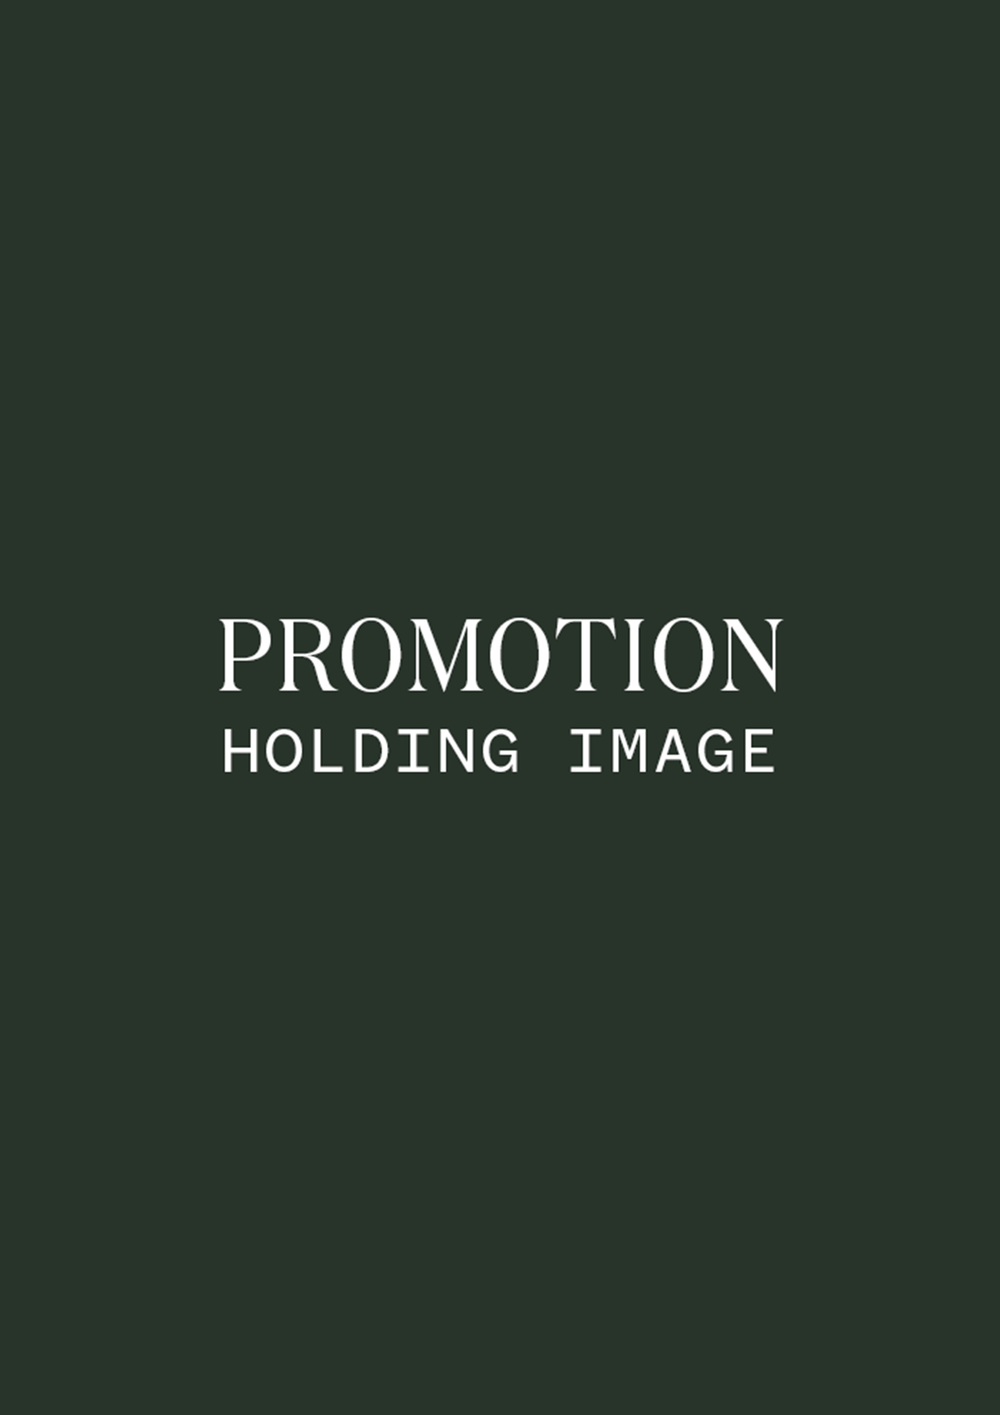 promotion_holding_a4.png